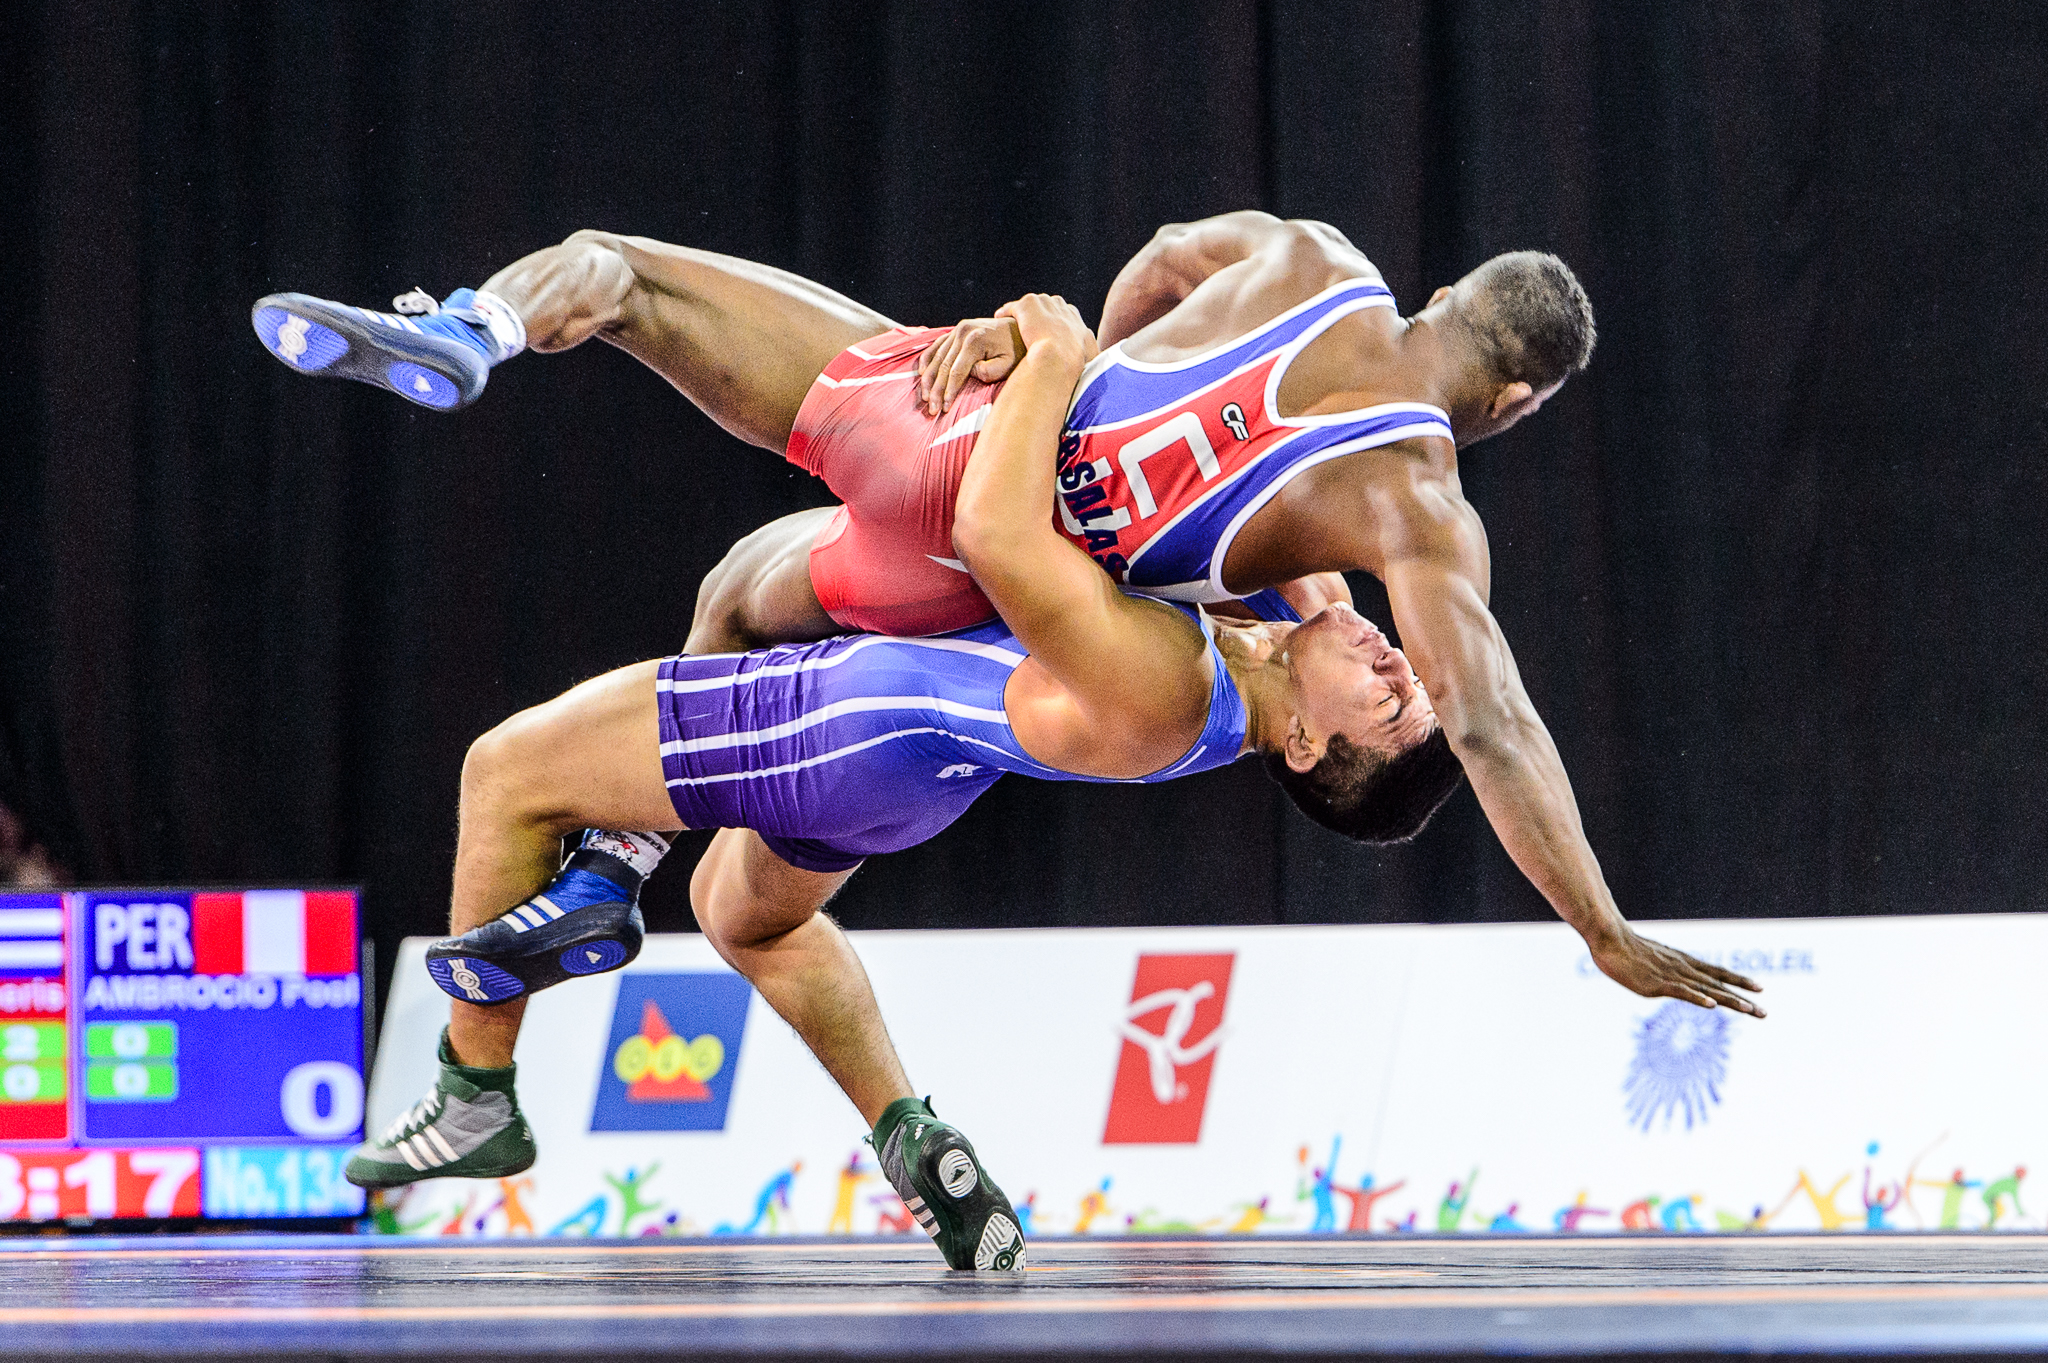 pan american games 2016 wrestling